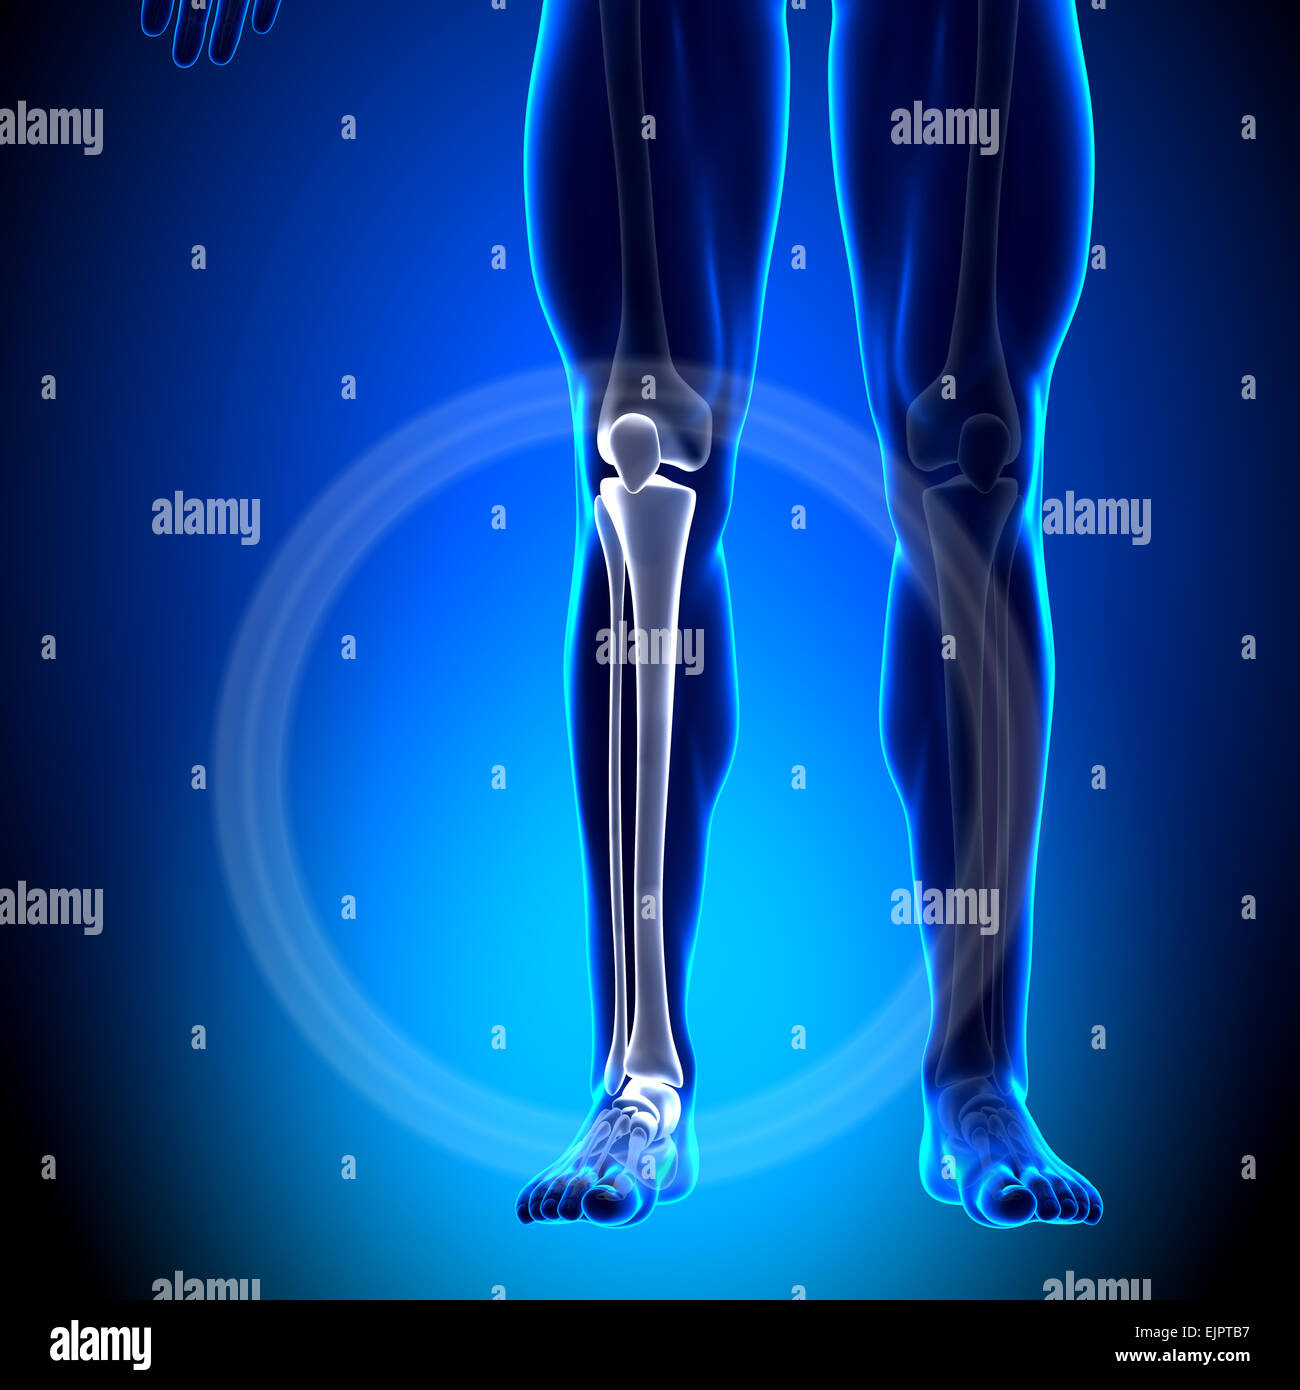 Male Tibia / Fibula - Calf Anatomy - Anatomy Bones Stock Photo ...